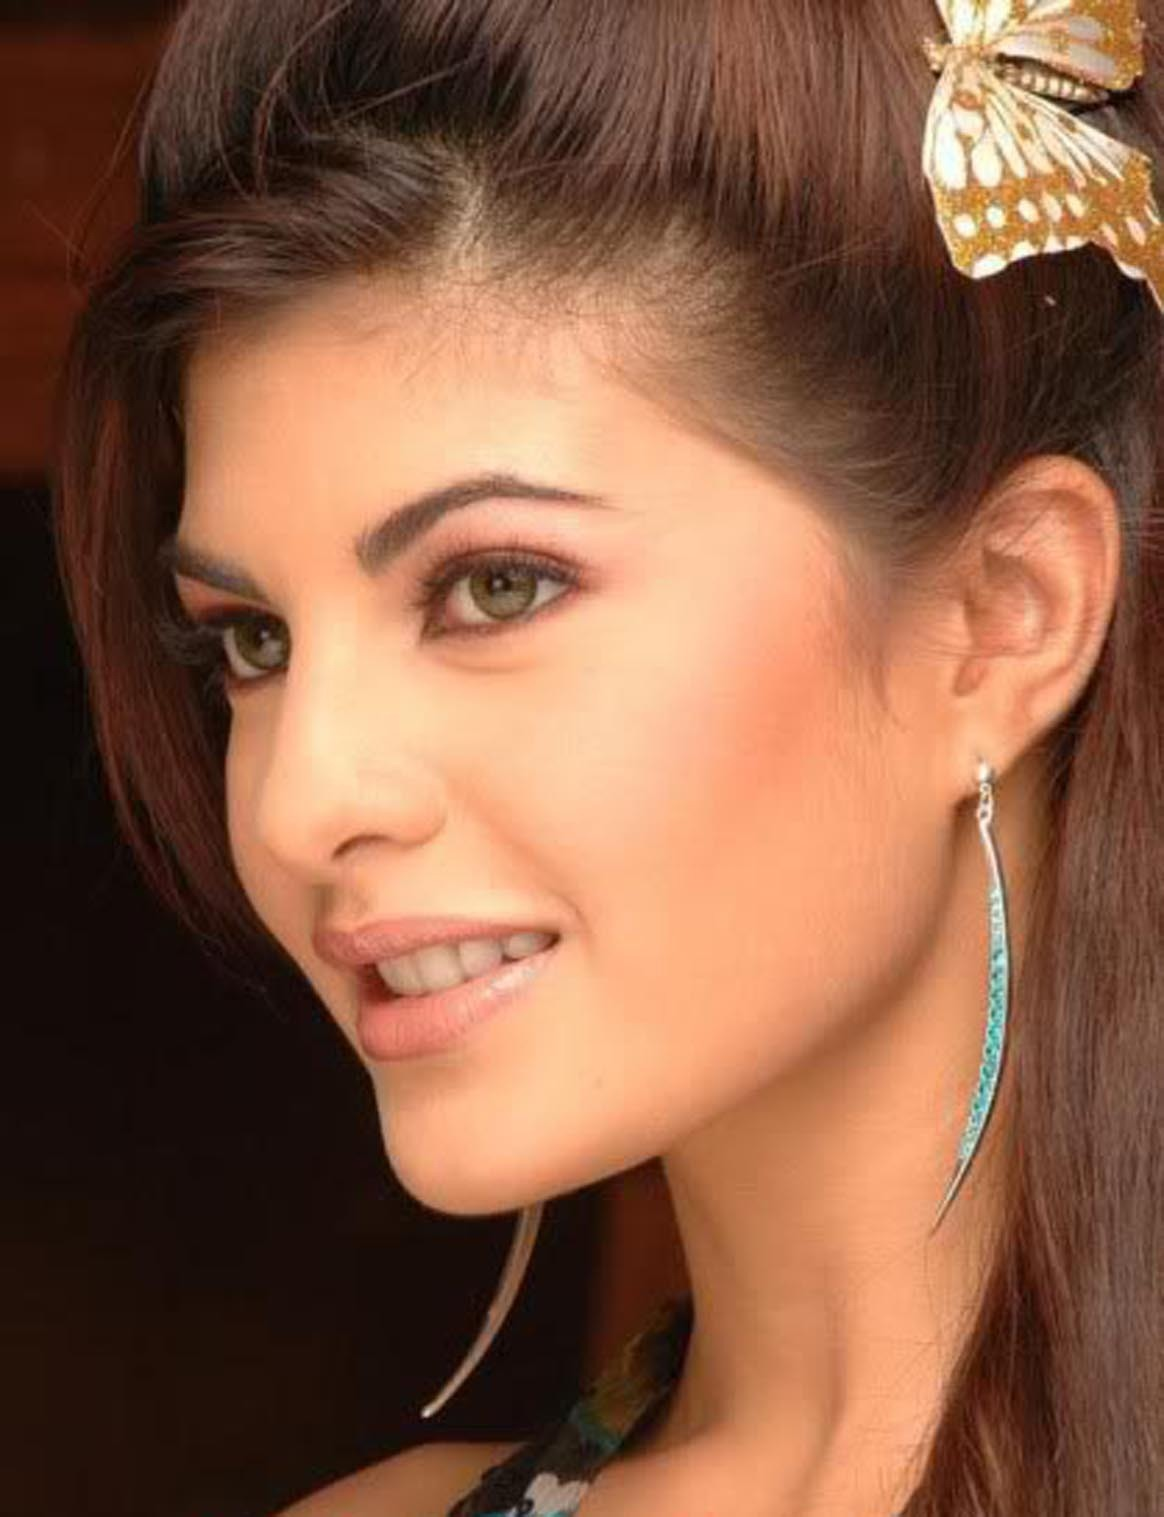 Jacqueline Fernandez Images Sweet Jacqueline Hd Wallpaper And